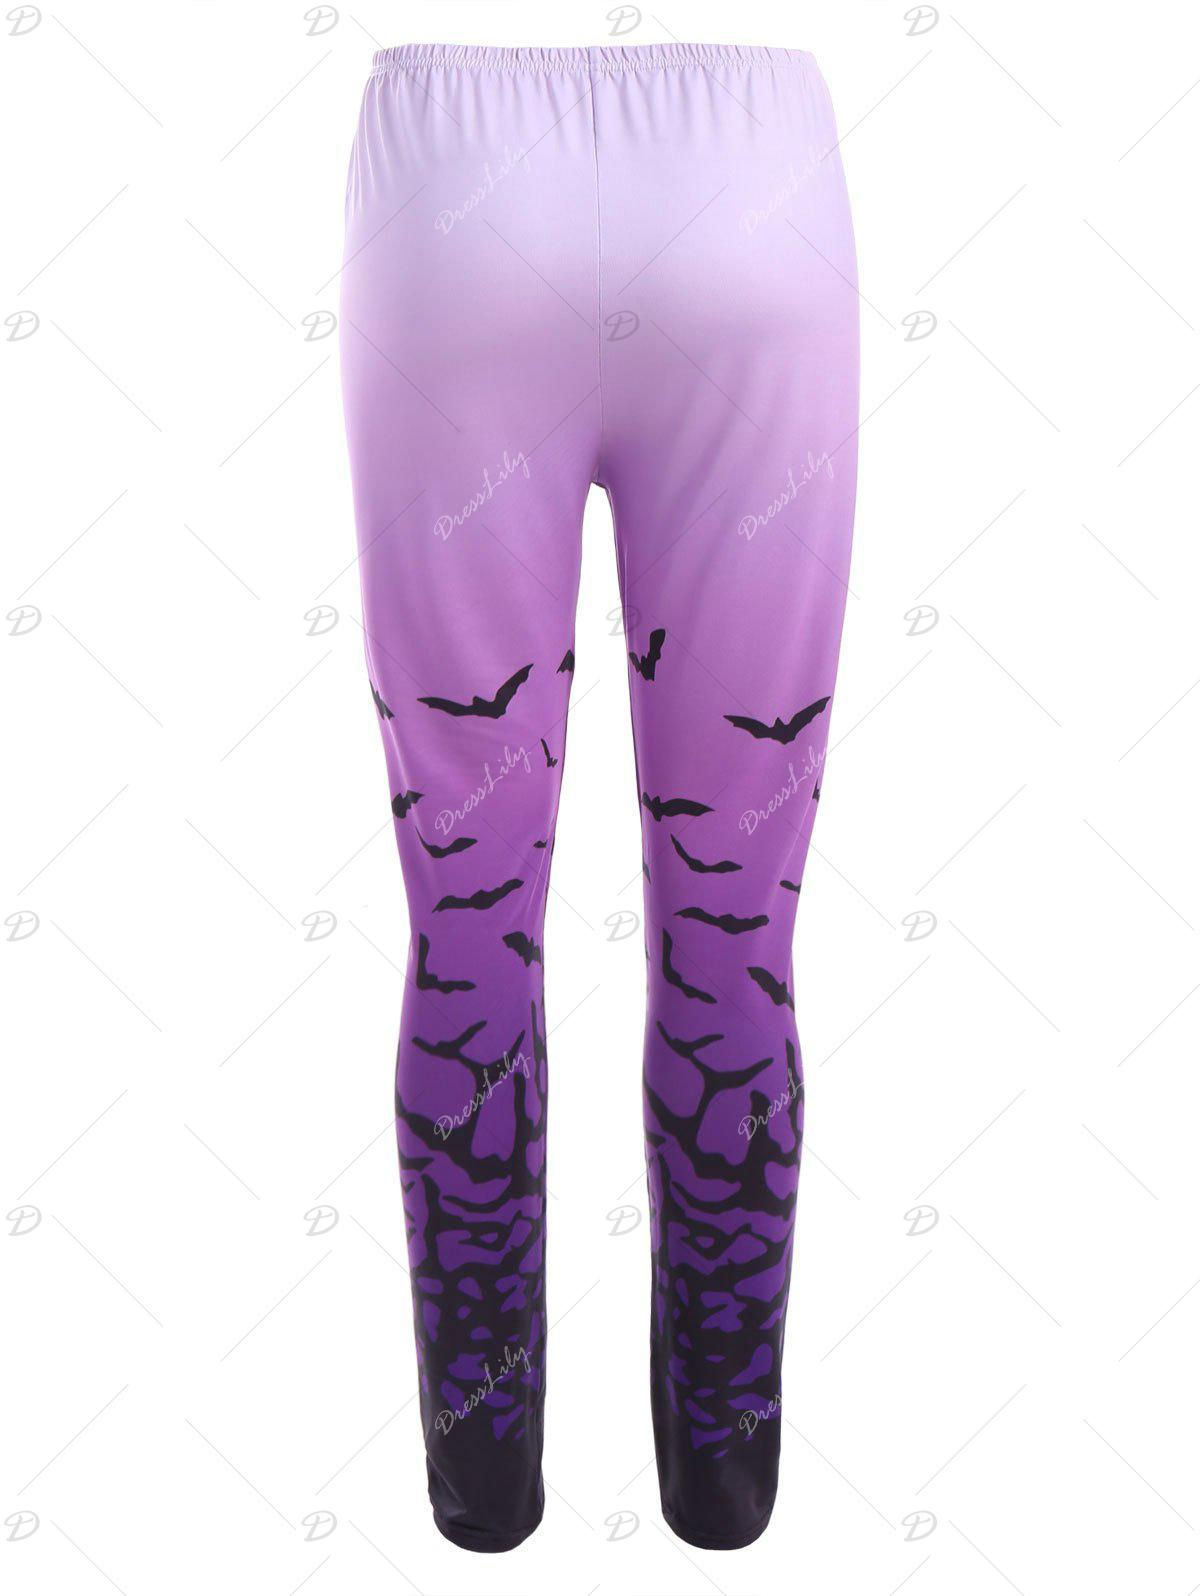 Ombre Bat Print Halloween Leggings - PURPLE S